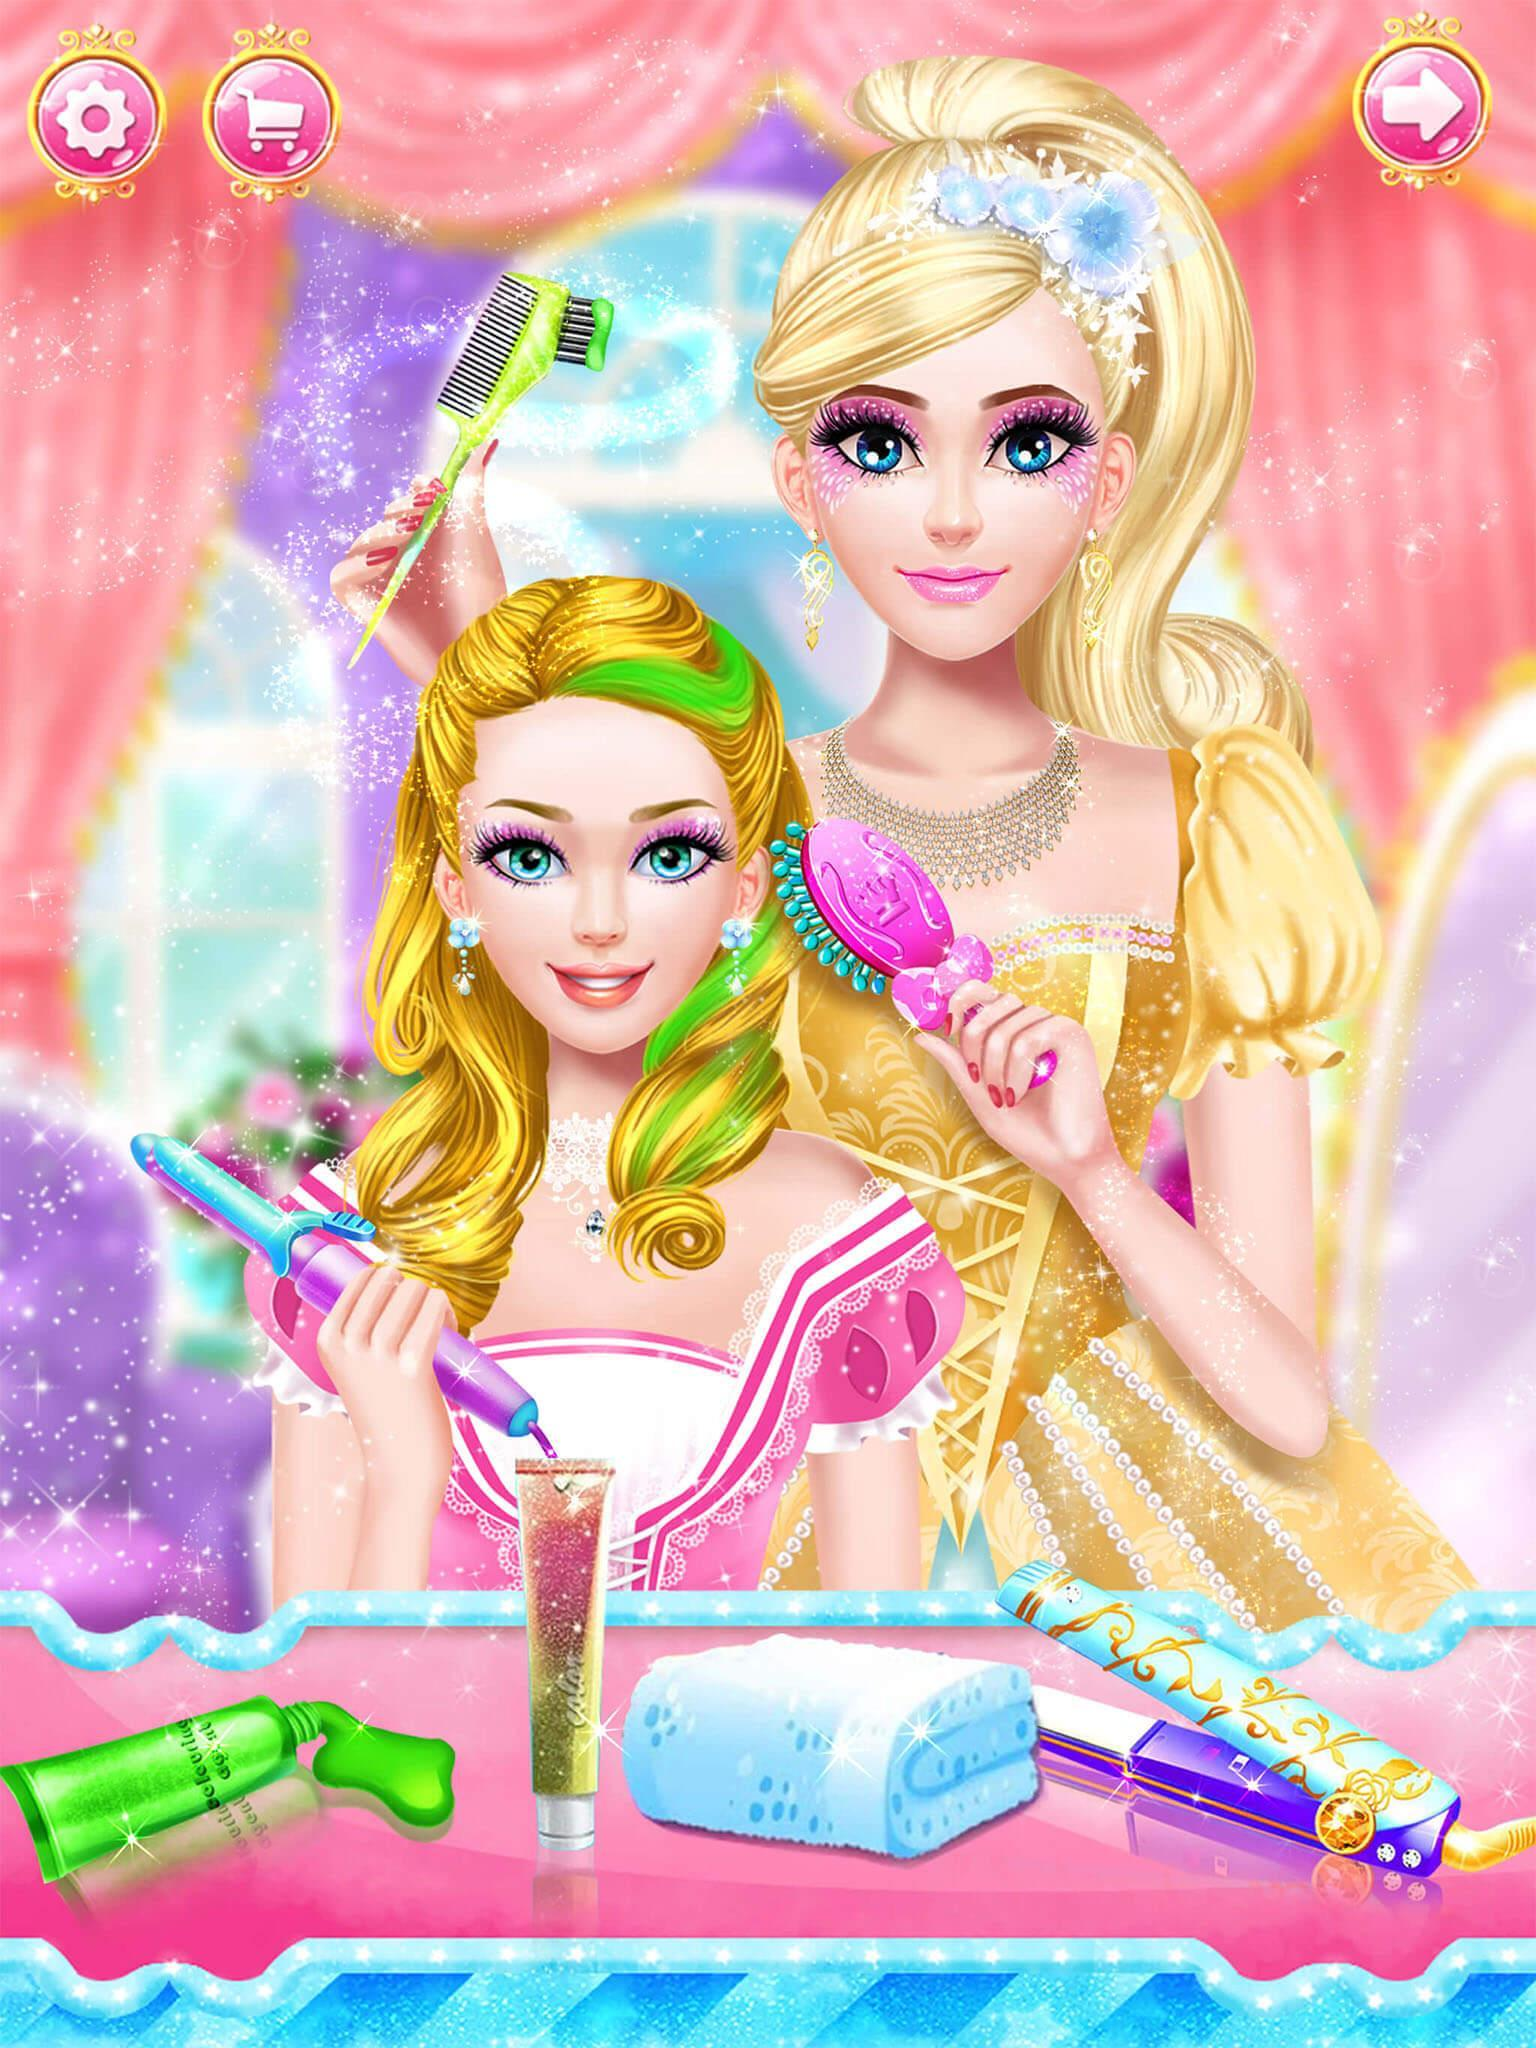 free download games of barbies dress up and make up